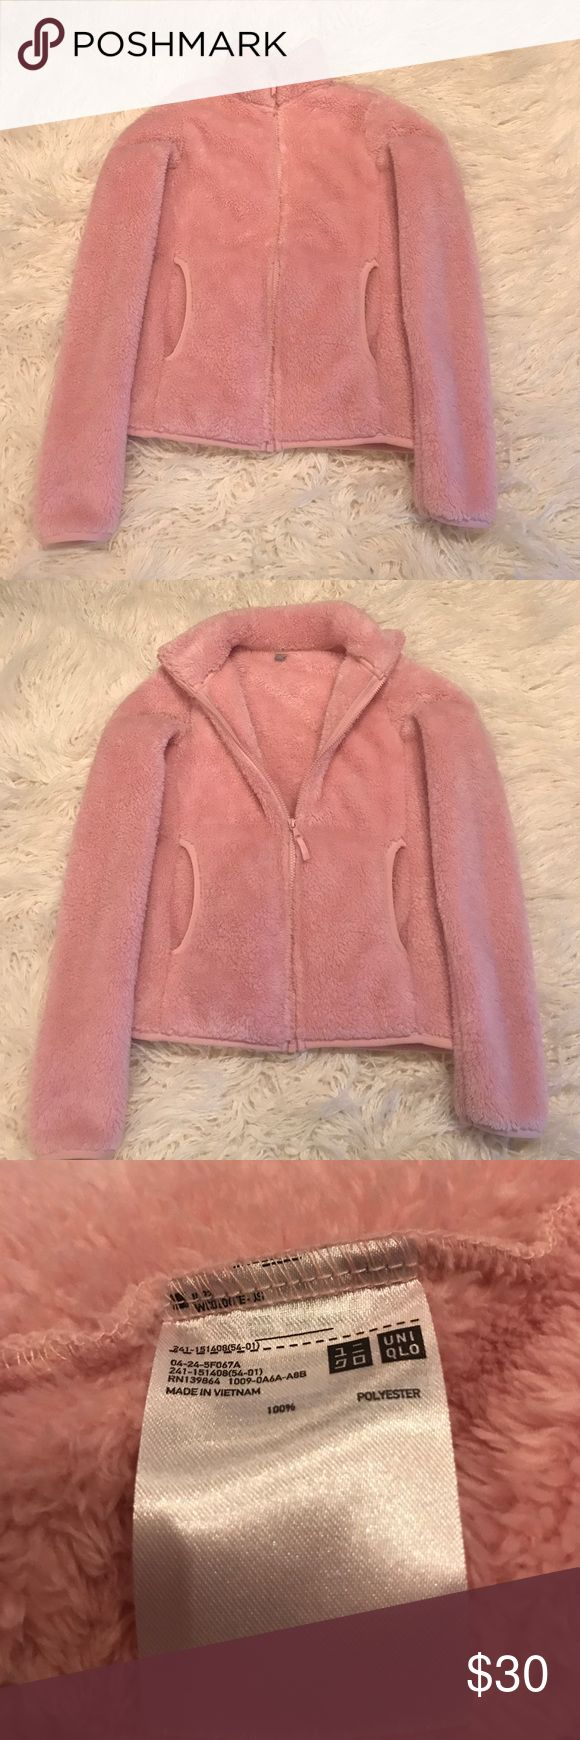 Fuzzy jacket Uniqlo fluffy soft jacket Uniqlo Jackets & Coats